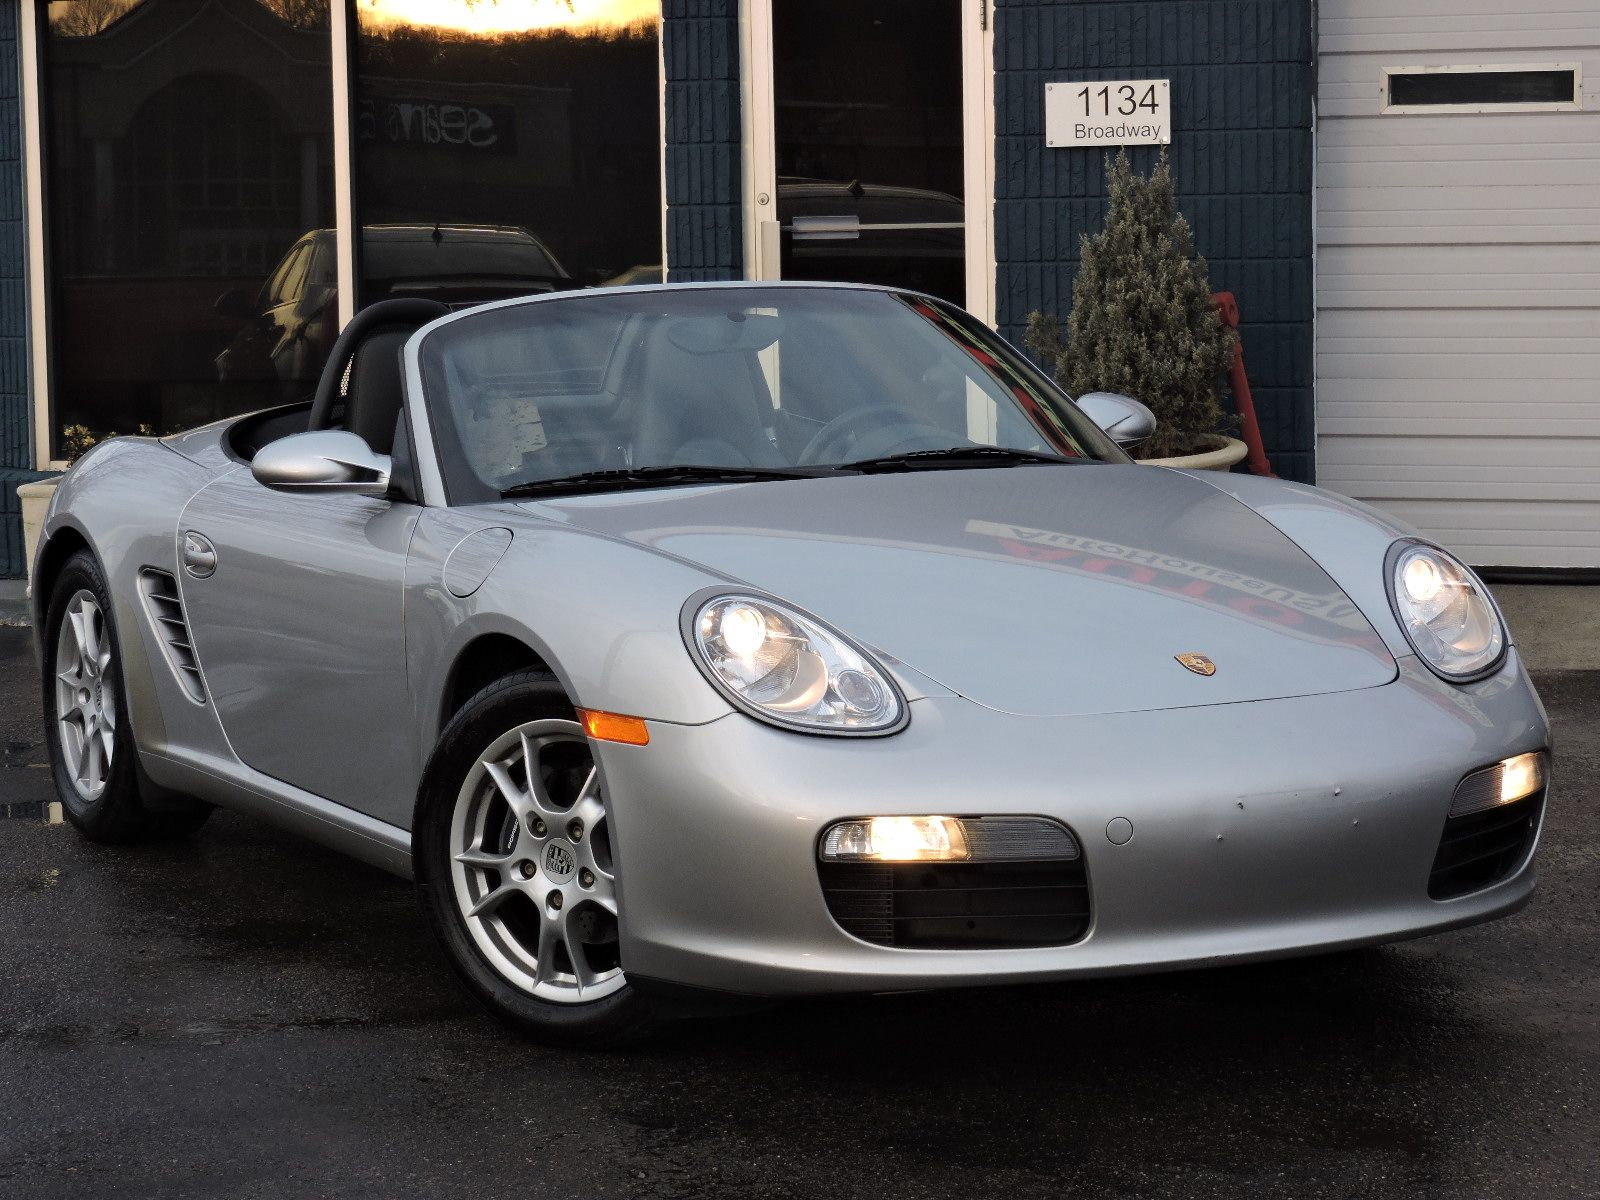 Used 2007 Porsche Boxster 2 Door Convertible at Auto House USA Saugus